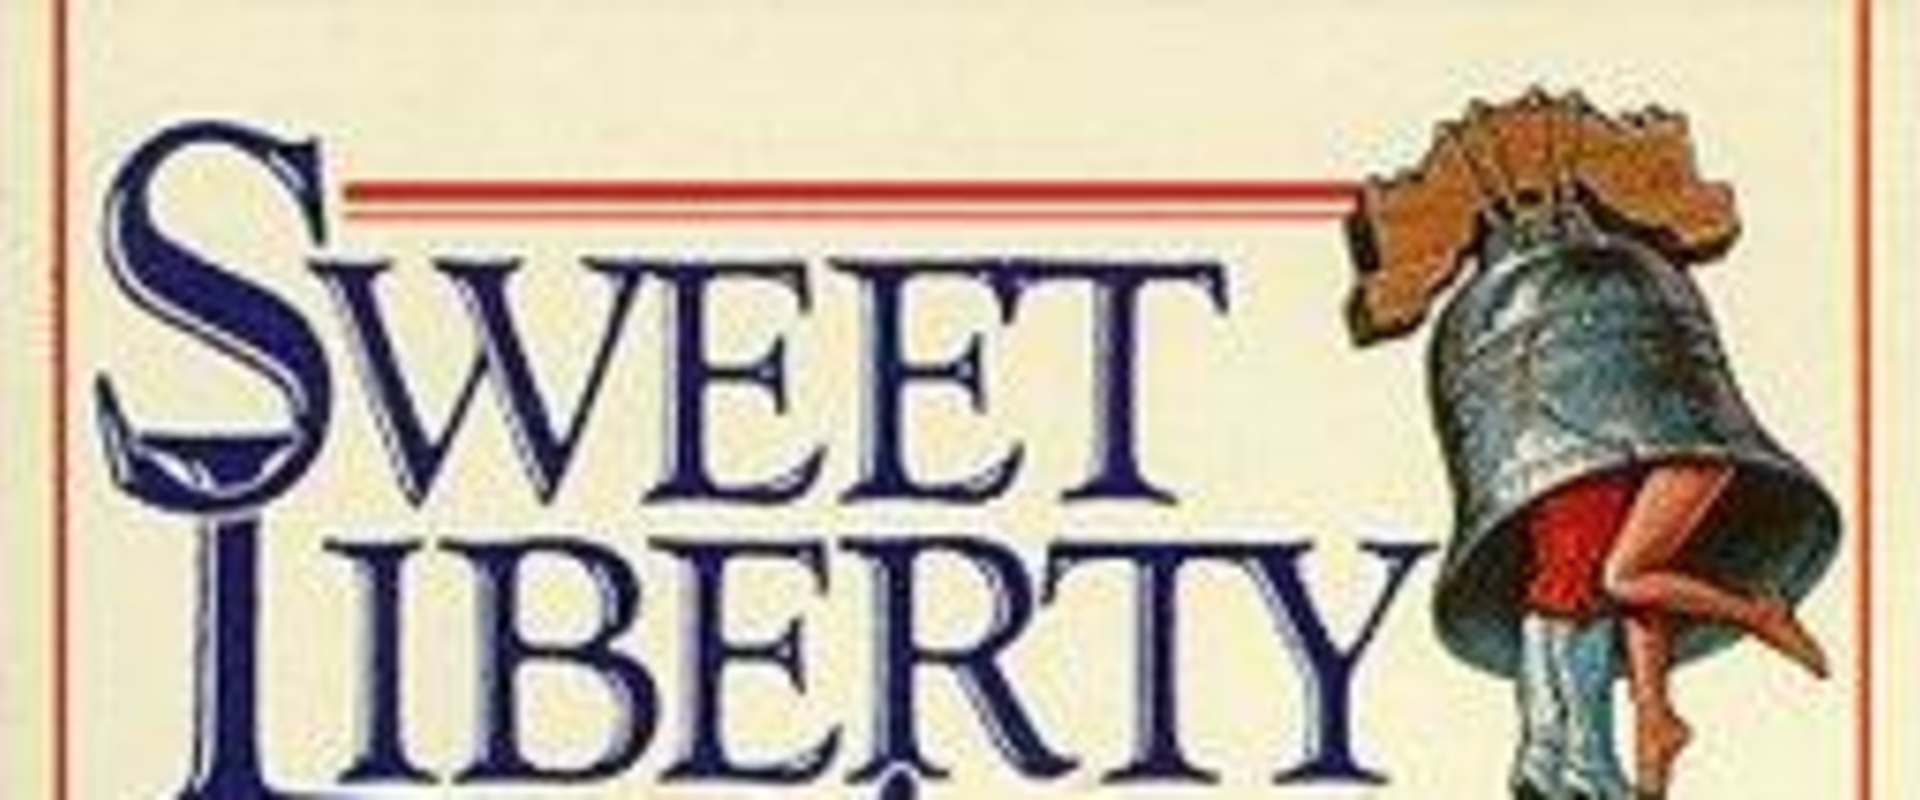 Sweet Liberty background 2